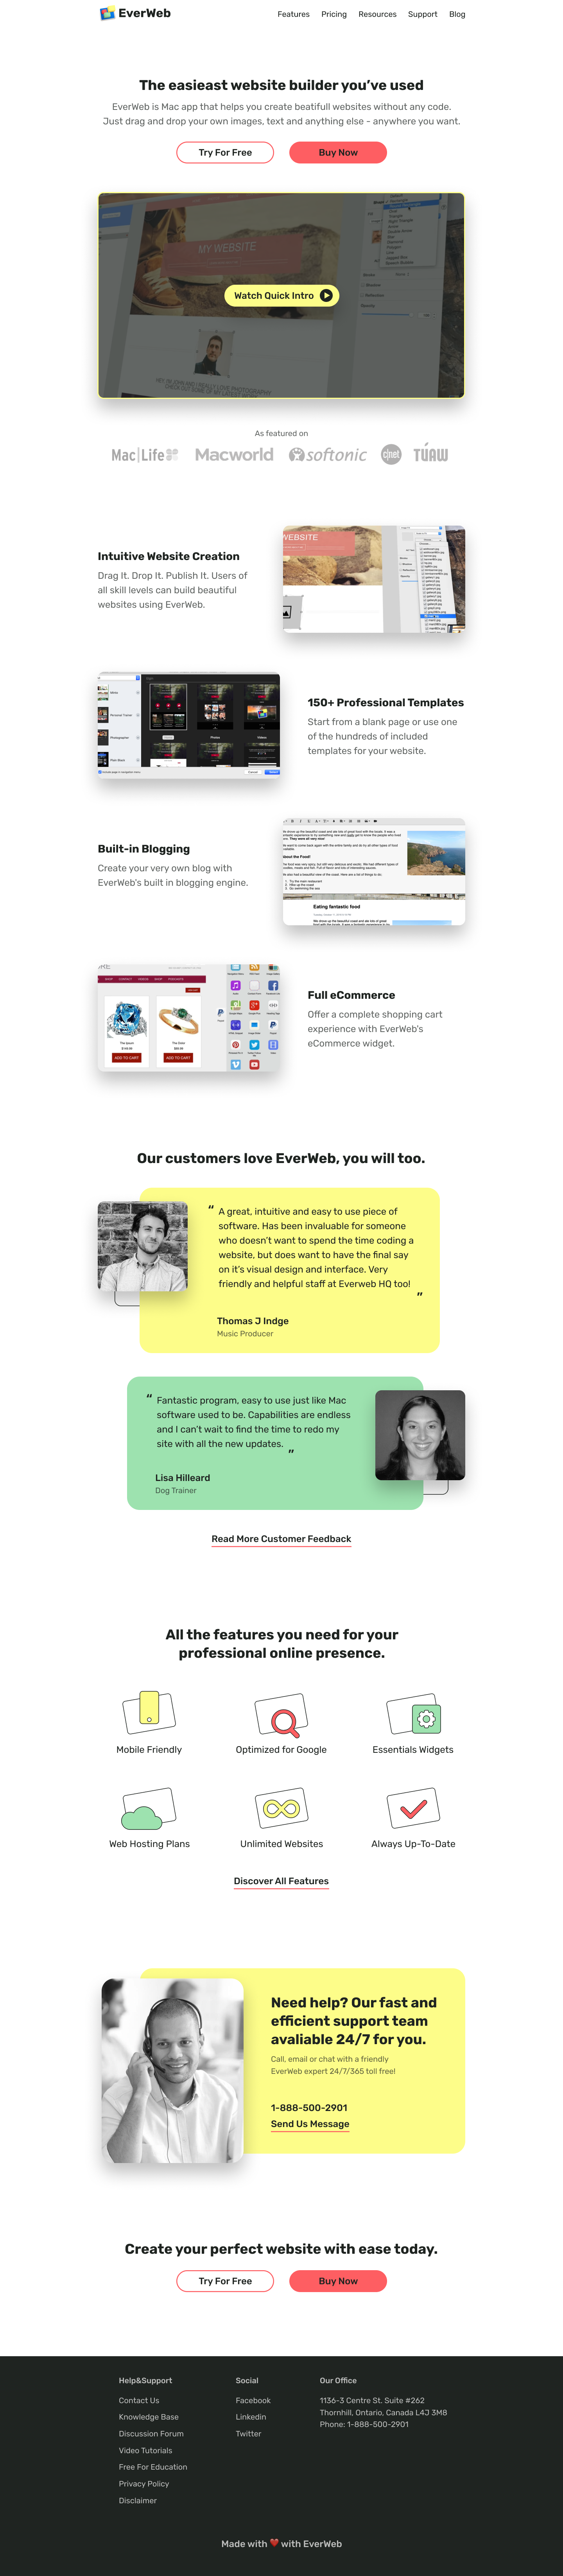 main page UI website redesign case study, landing page